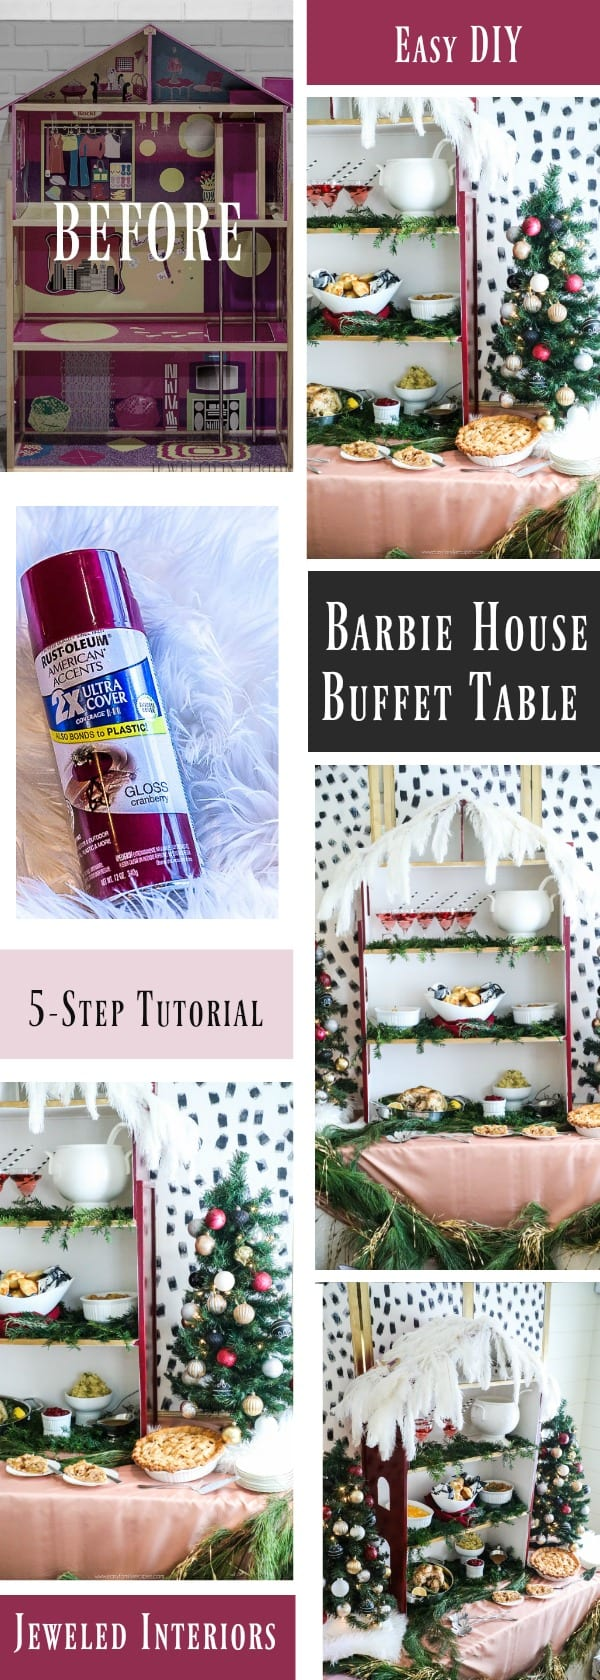 How to make a holiday buffet table from a Barbie house! 5 simple DIY tips to Christmas party greatness!     Holiday, Christmas, buffet, jeweledinteriors, Burgundy, Dalmatian, party, black and white, ideas, DIY, tutorial,  pink, gold, dinner